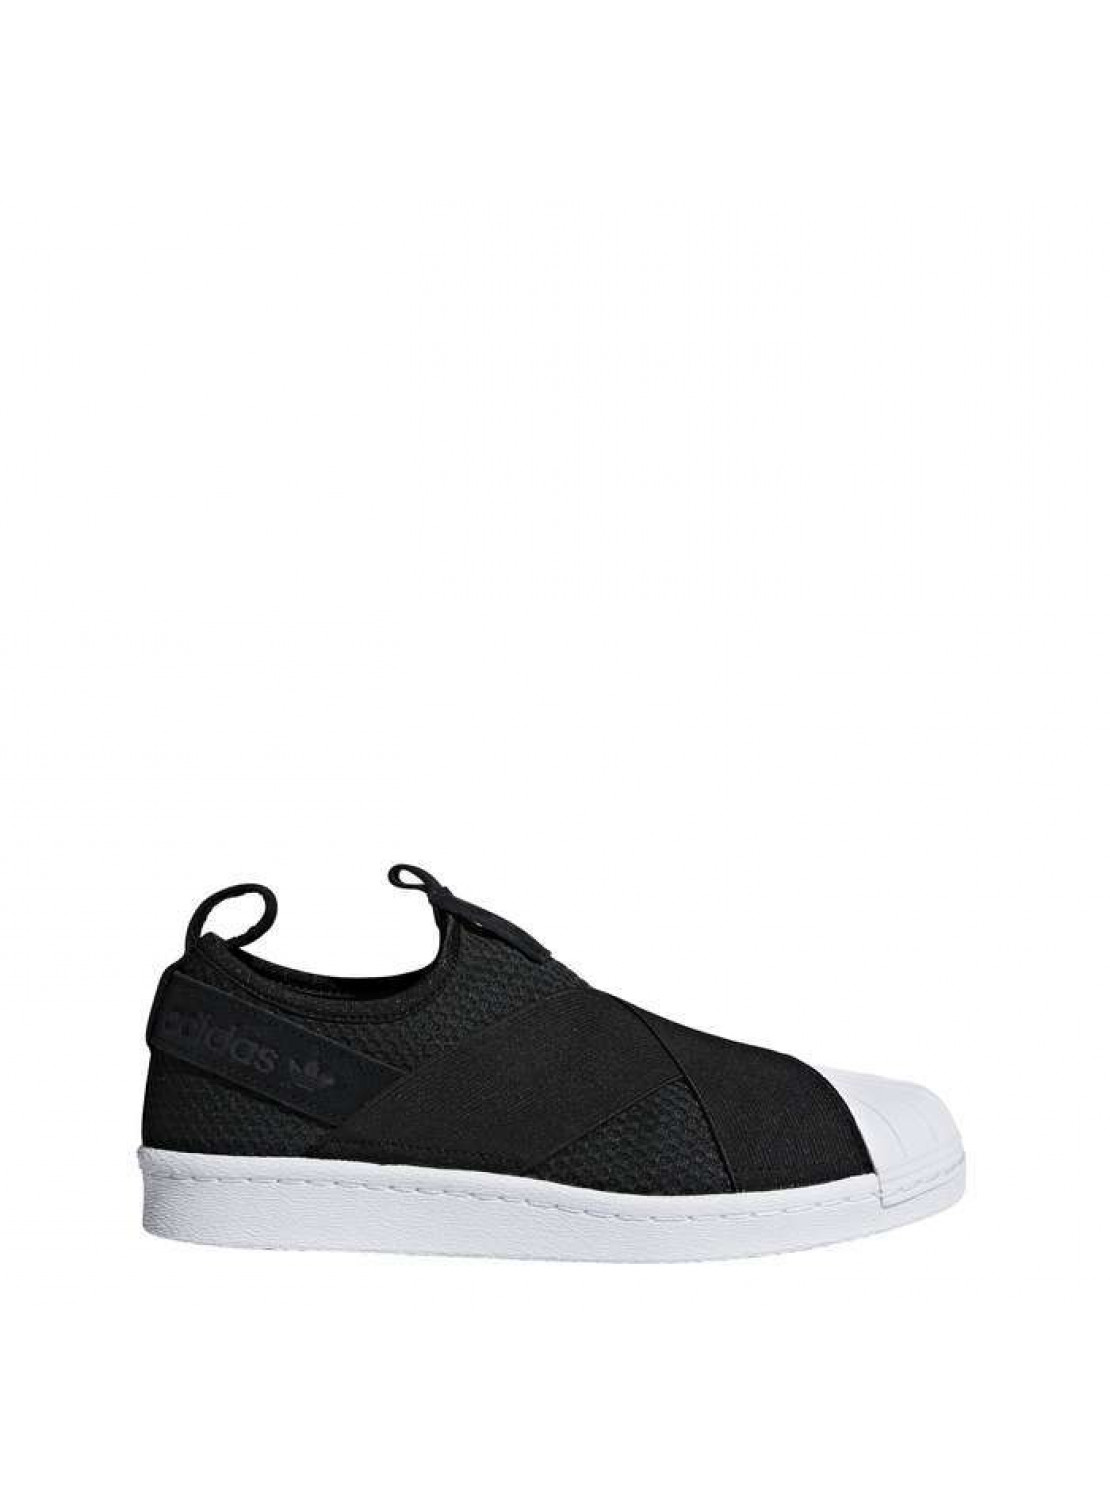 zapatilla adidas slip on